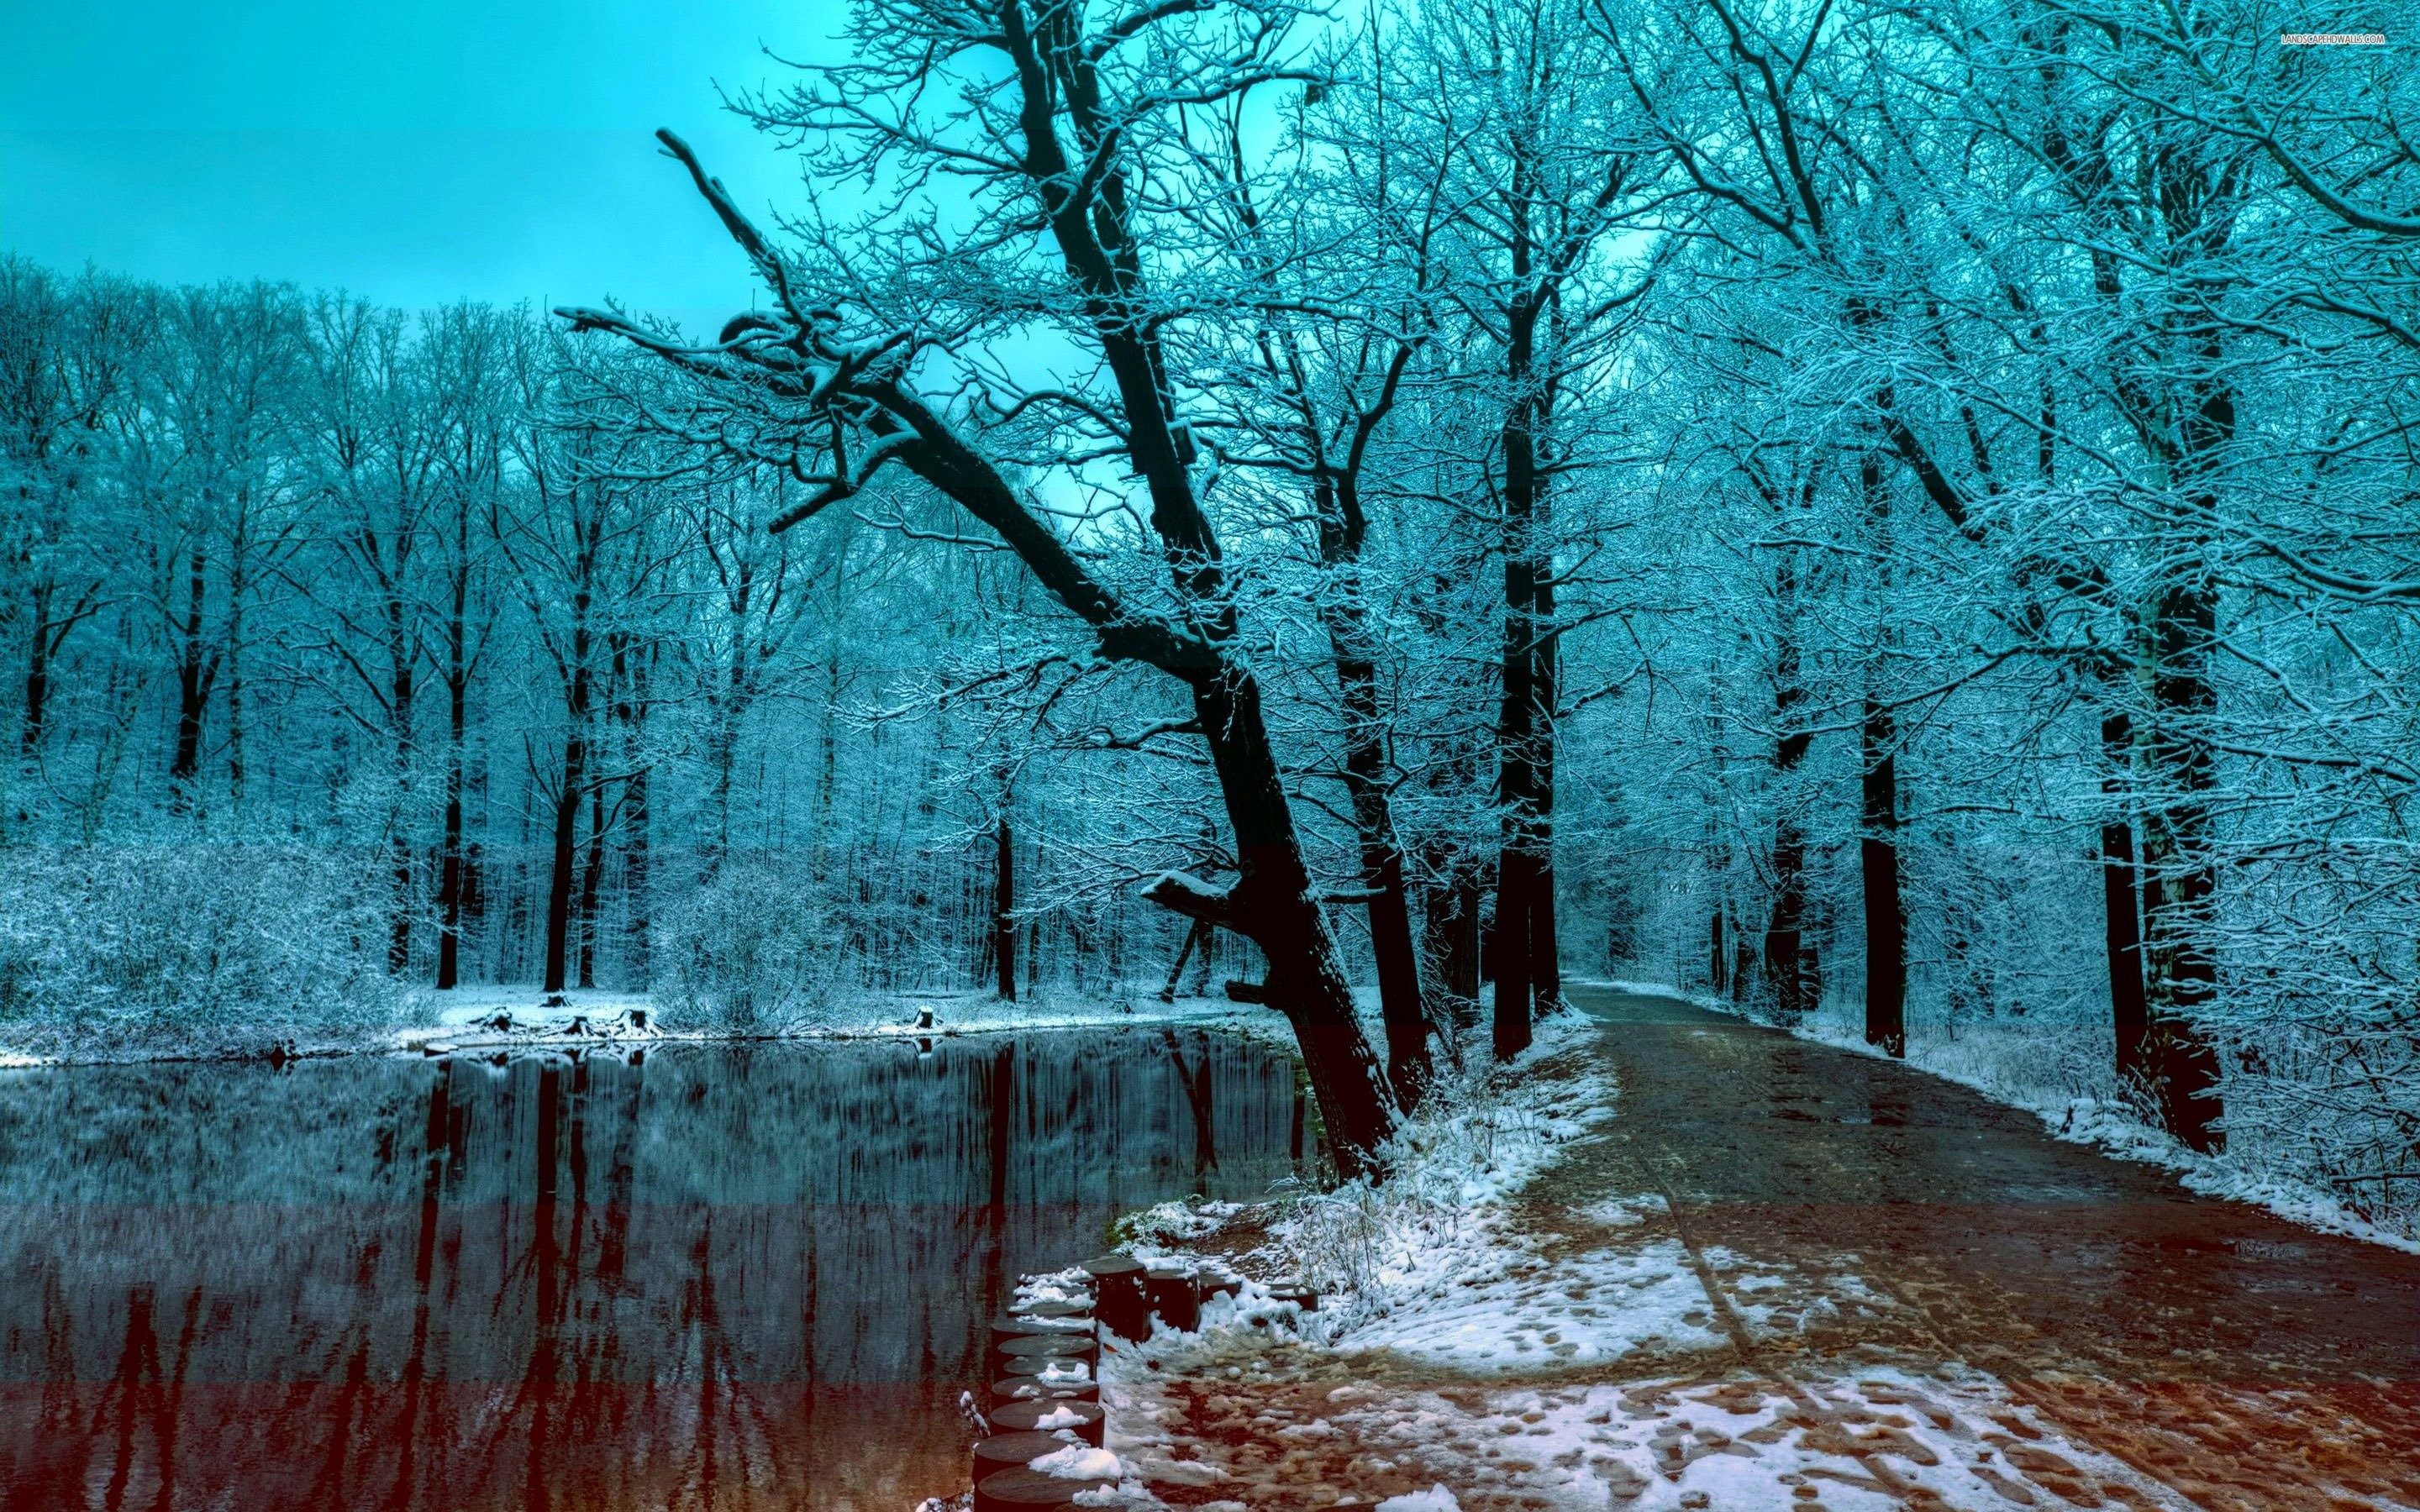 Forest 4k Quality Iphone Wallpaper: Beautiful Winter Wallpapers (60+ Images